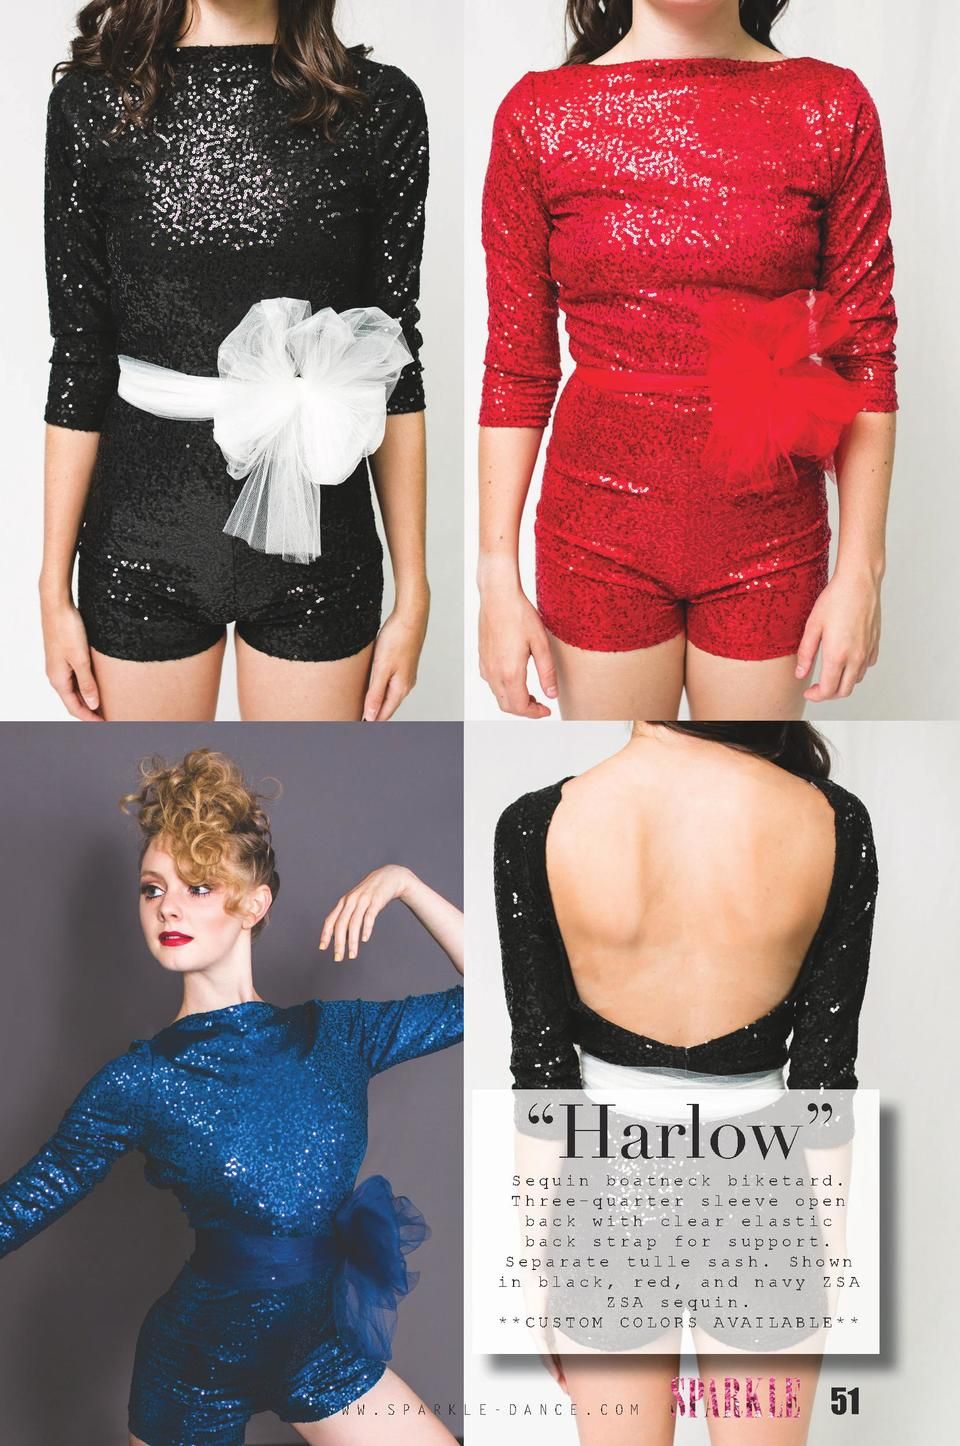 Harlow     Sequin boatneck biketard. Three-quarter sleeve open back with clear elastic back strap for support. Separate...